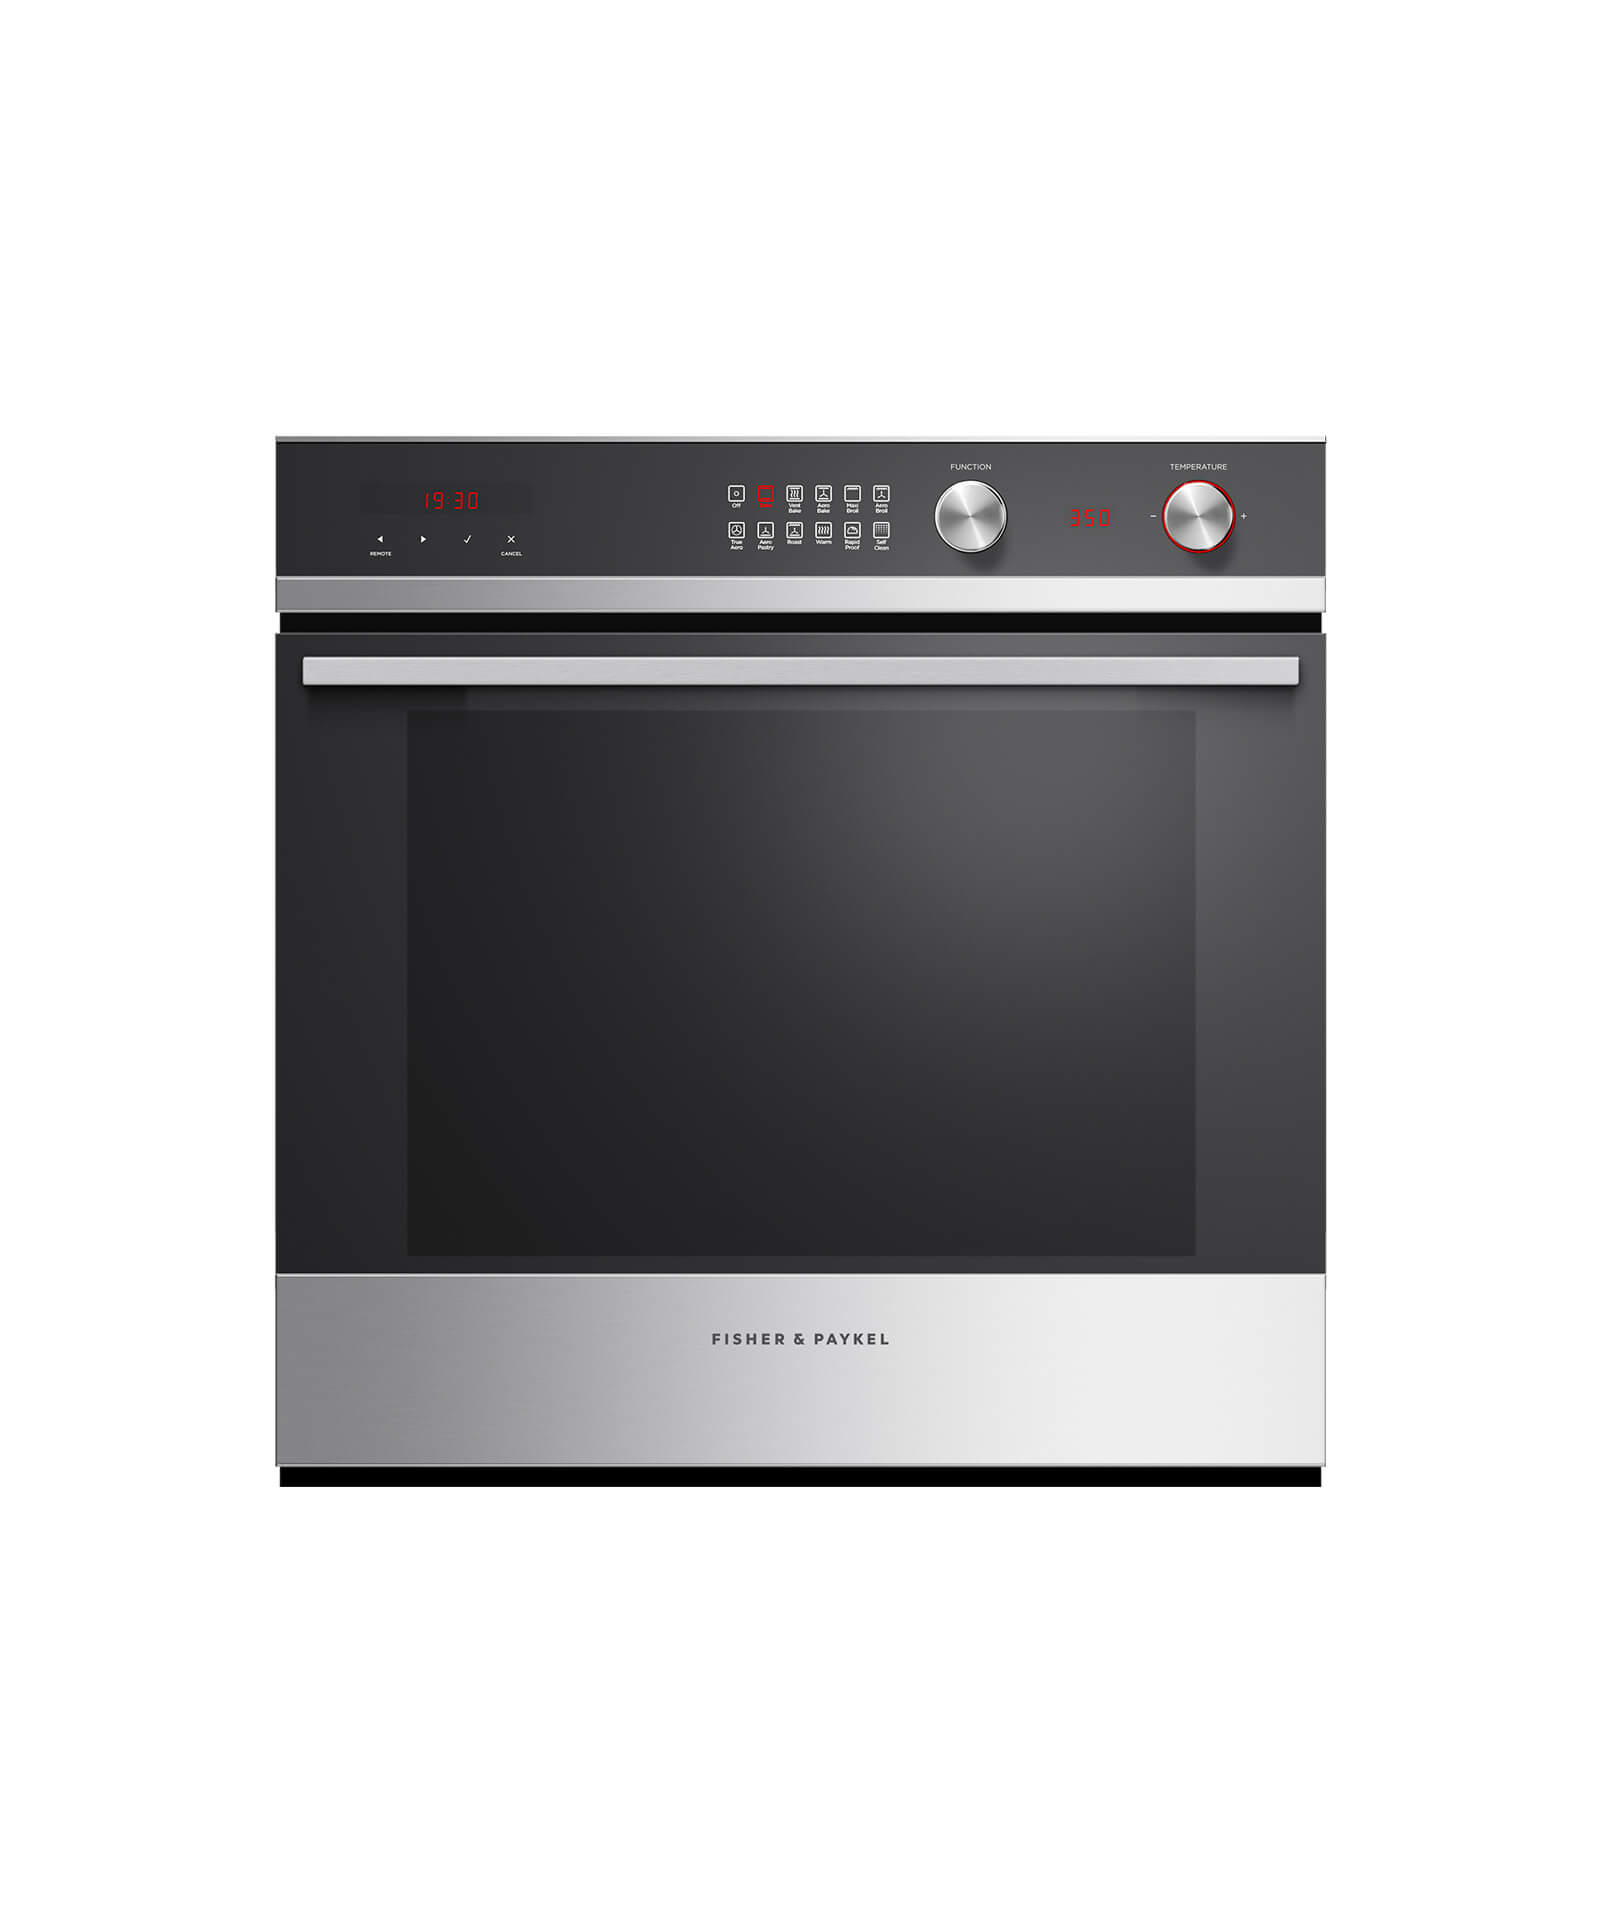 "Built-in Oven, Self-cleaning 24"", 11 Function, 3 cu ft"